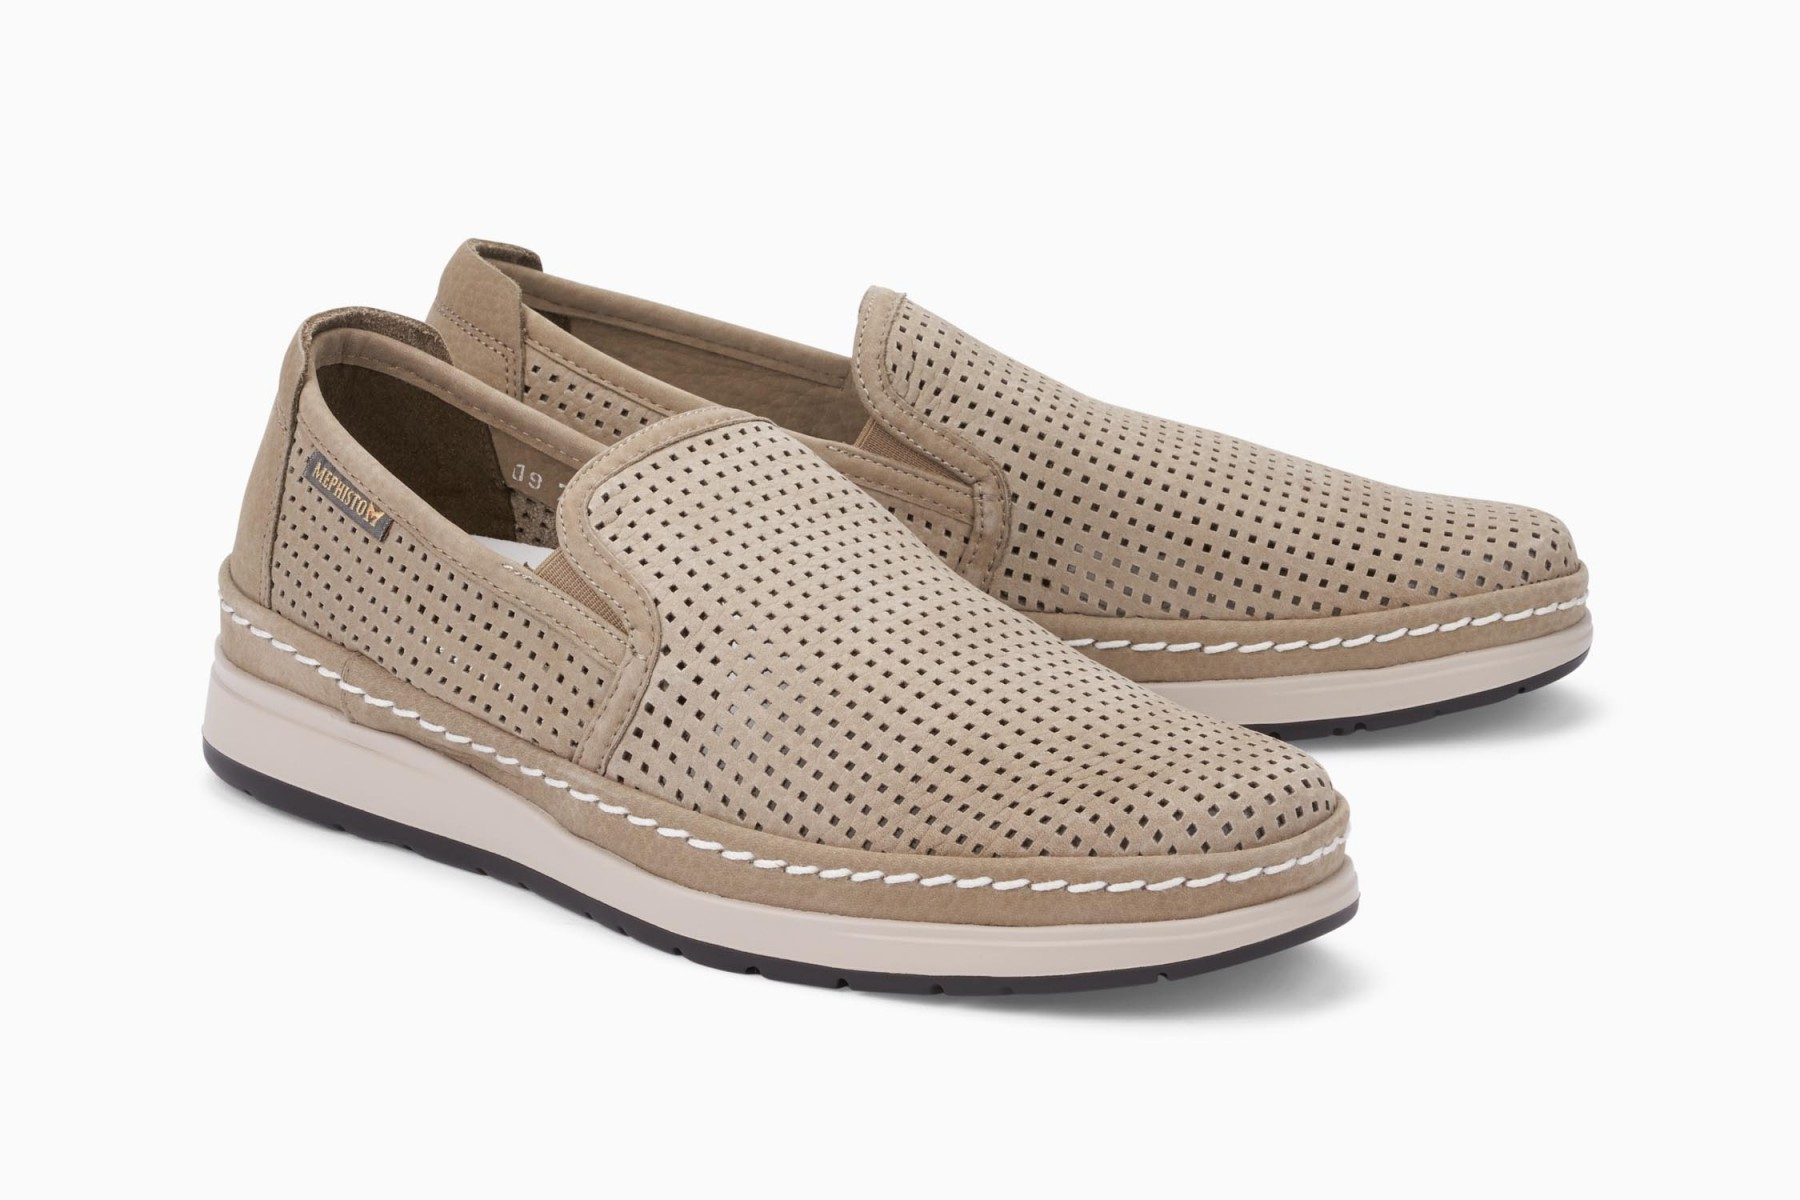 650ded8f7f HADRIAN PERF Slip-on - MEPHISTO Men's Loafers and Slip-ons ...